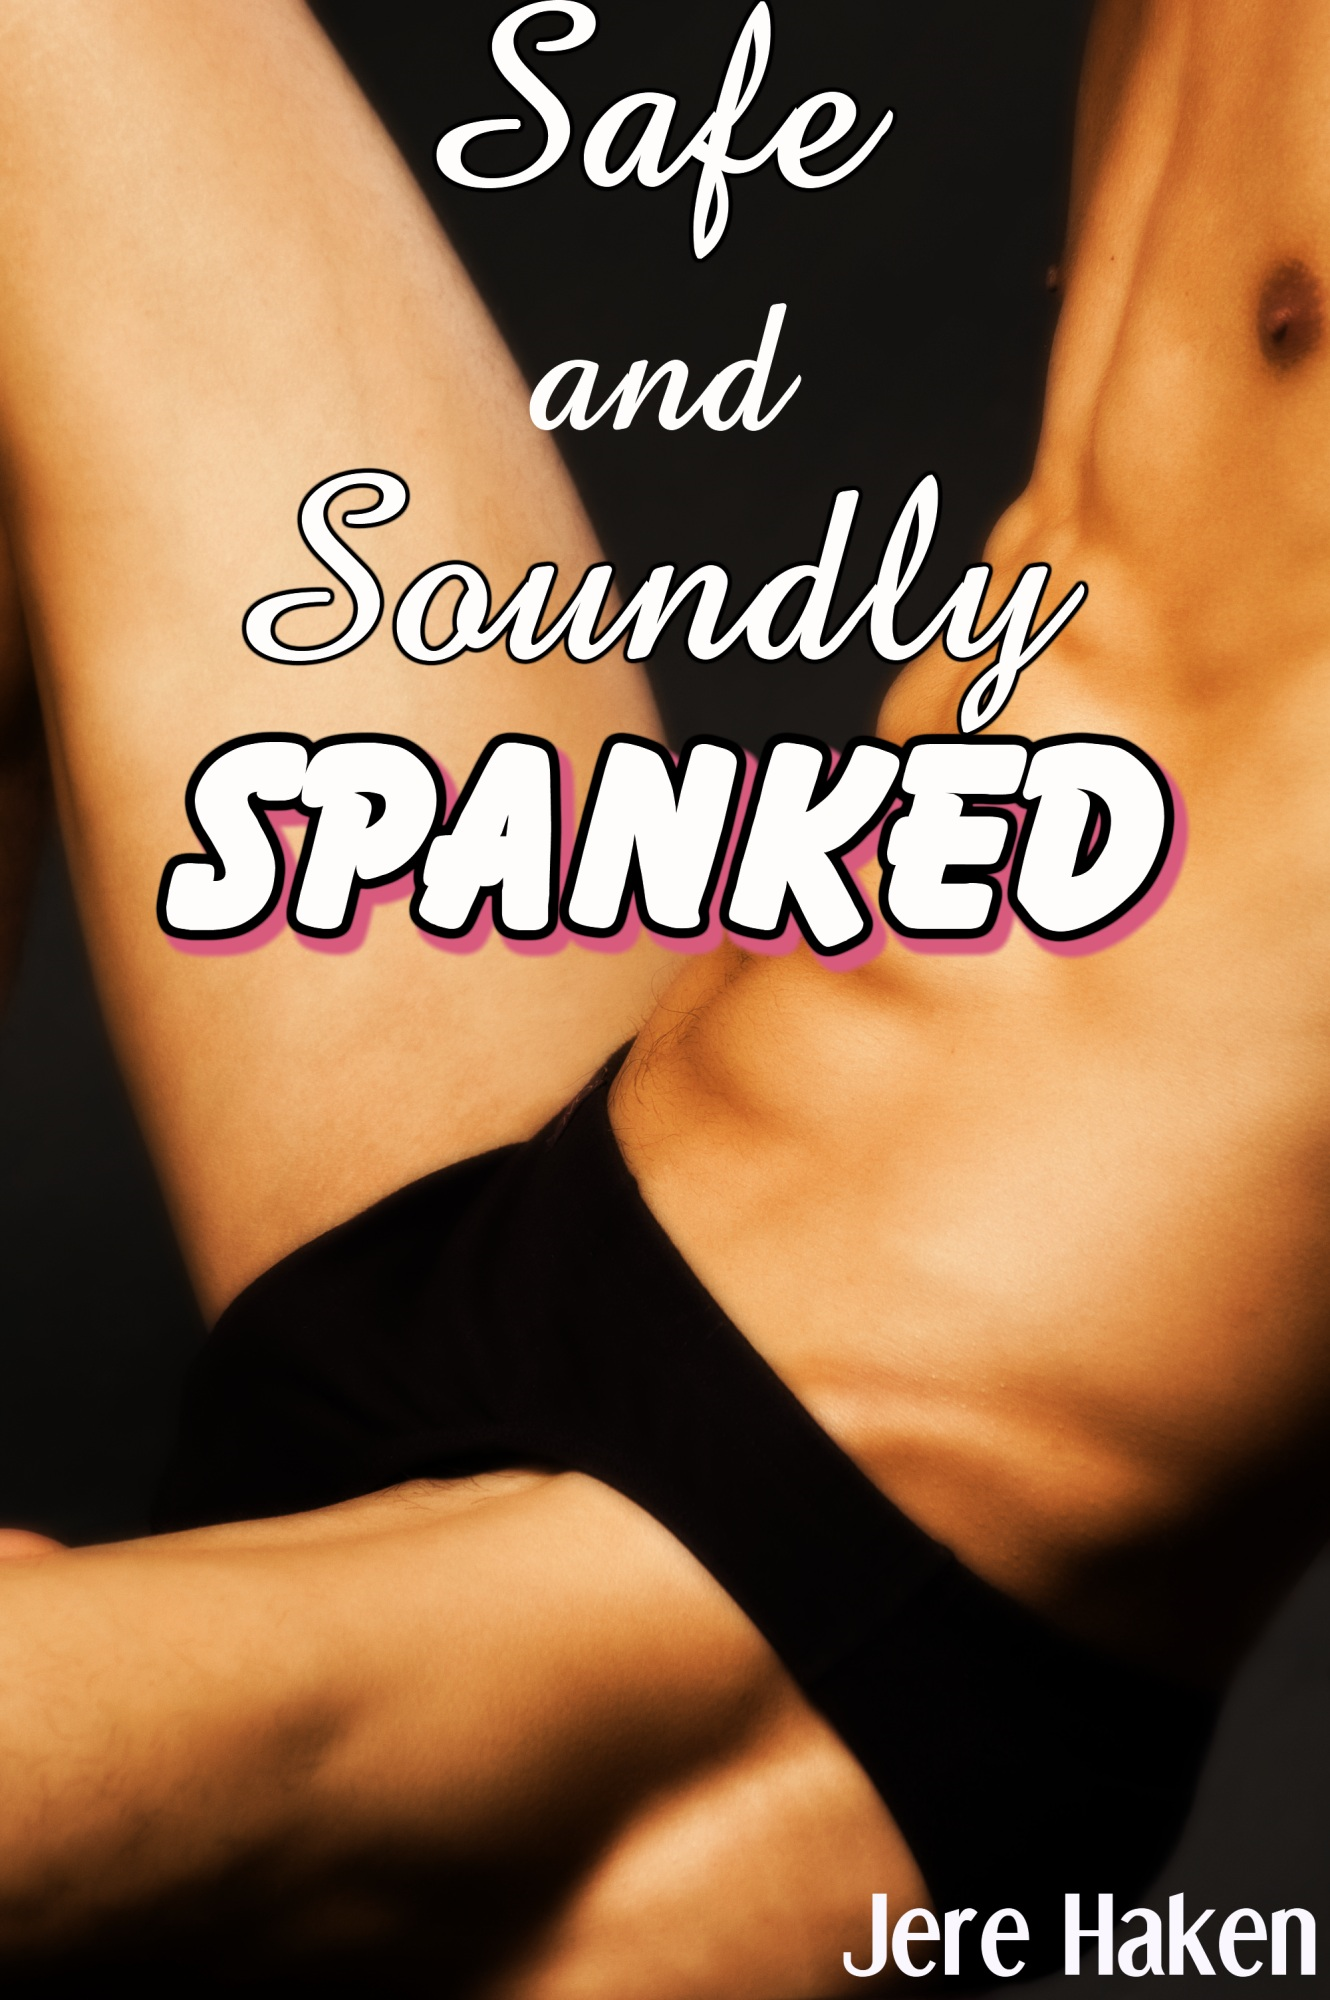 Safe and Soundly Spanked